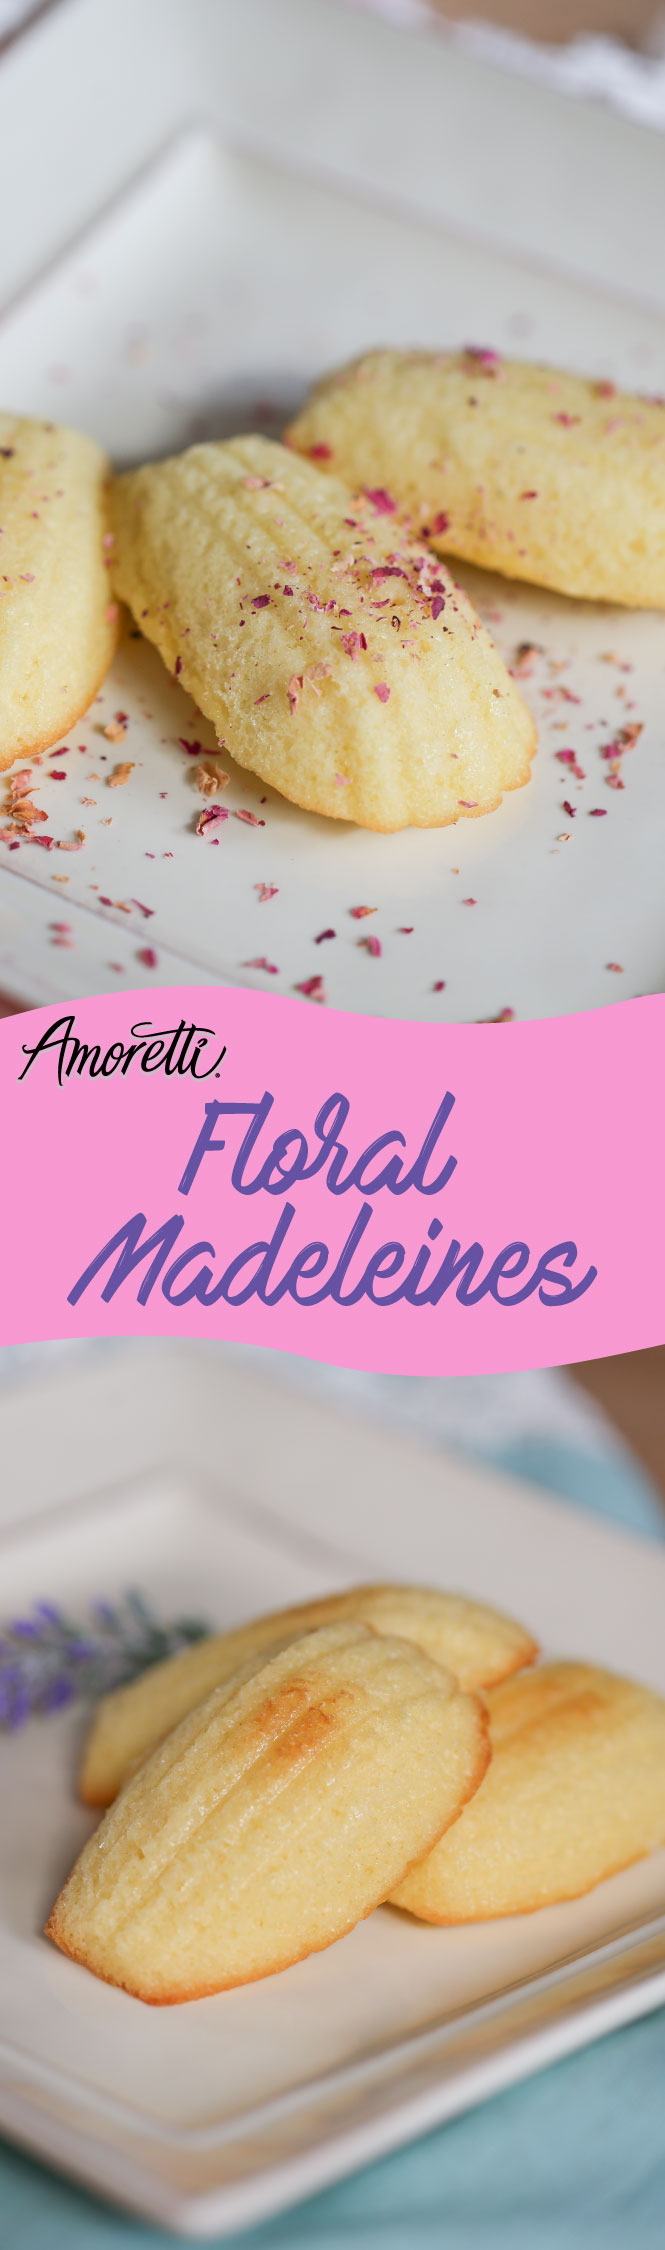 We highly recommend calling your friends, having a tea party, and bringing out these floral madeleines to enjoy!